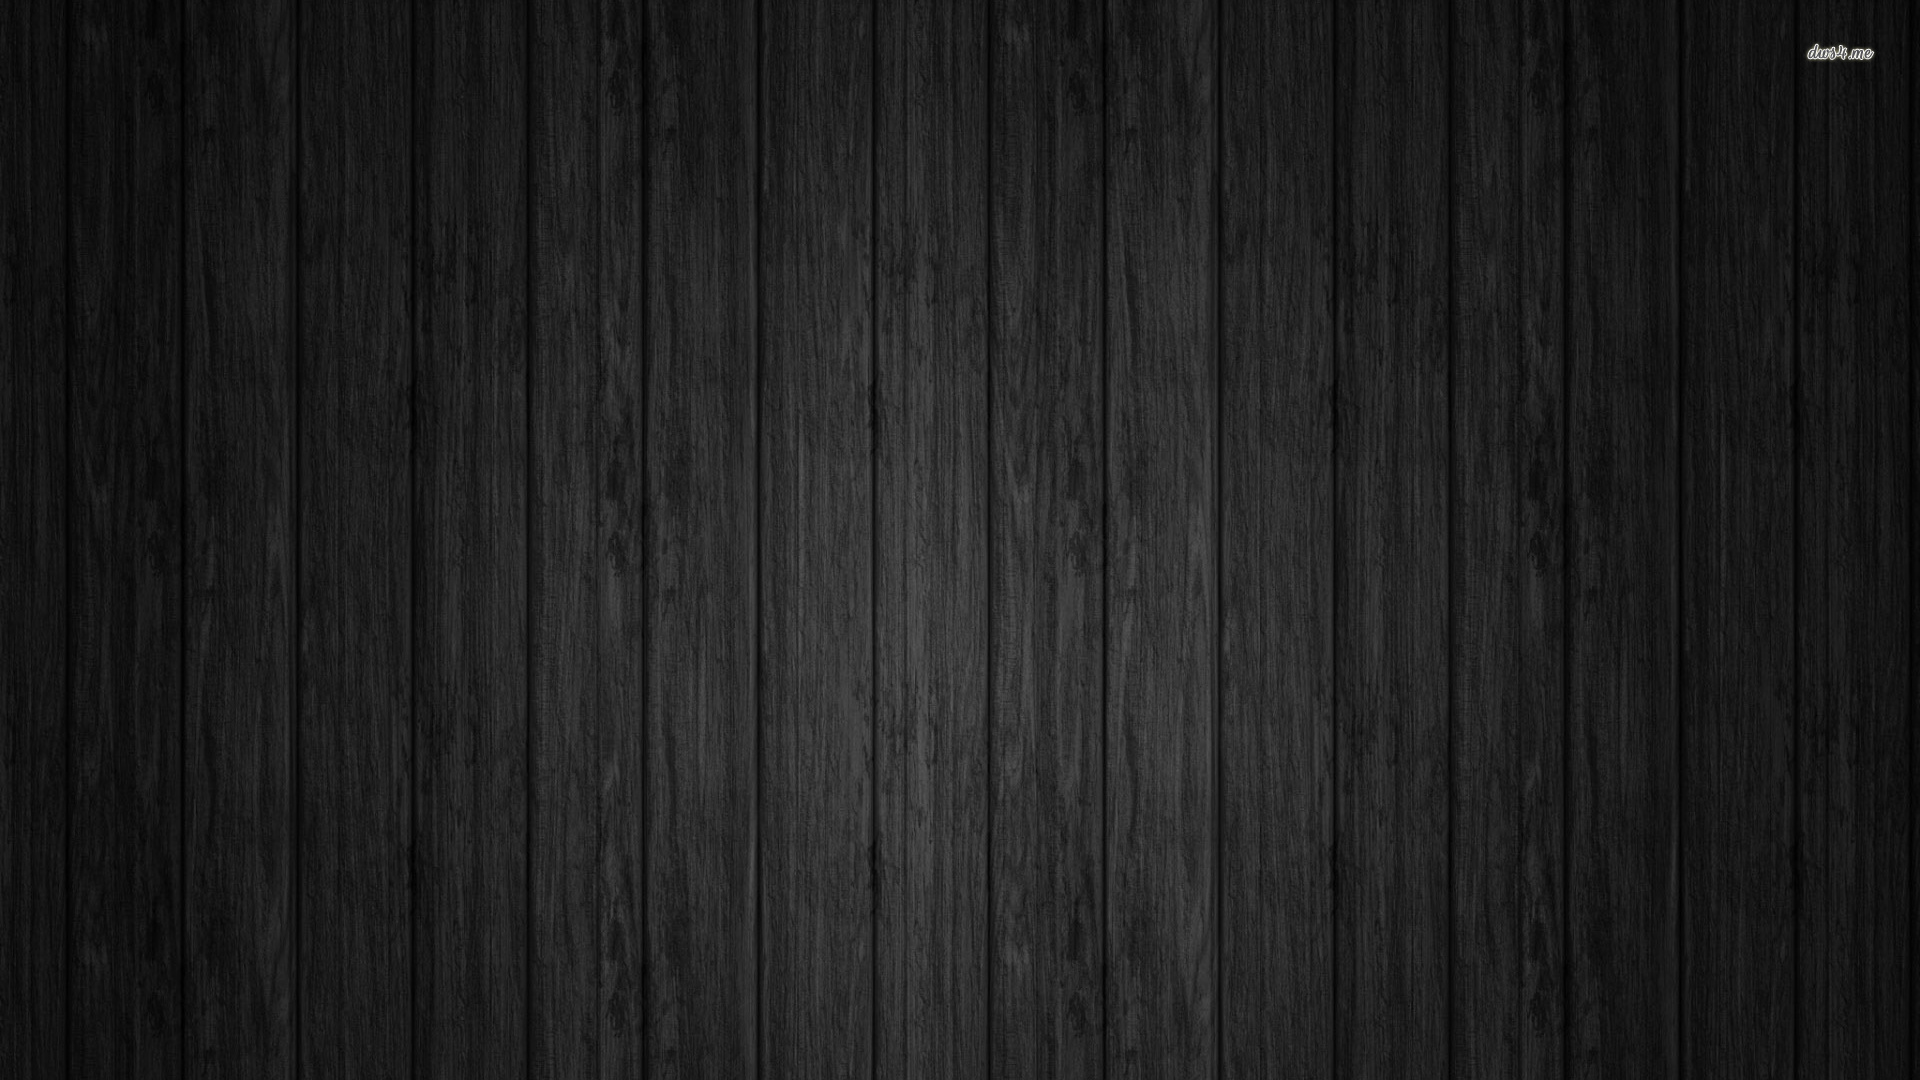 Leather texture black wallpaper abstract wooden textured wallpapers